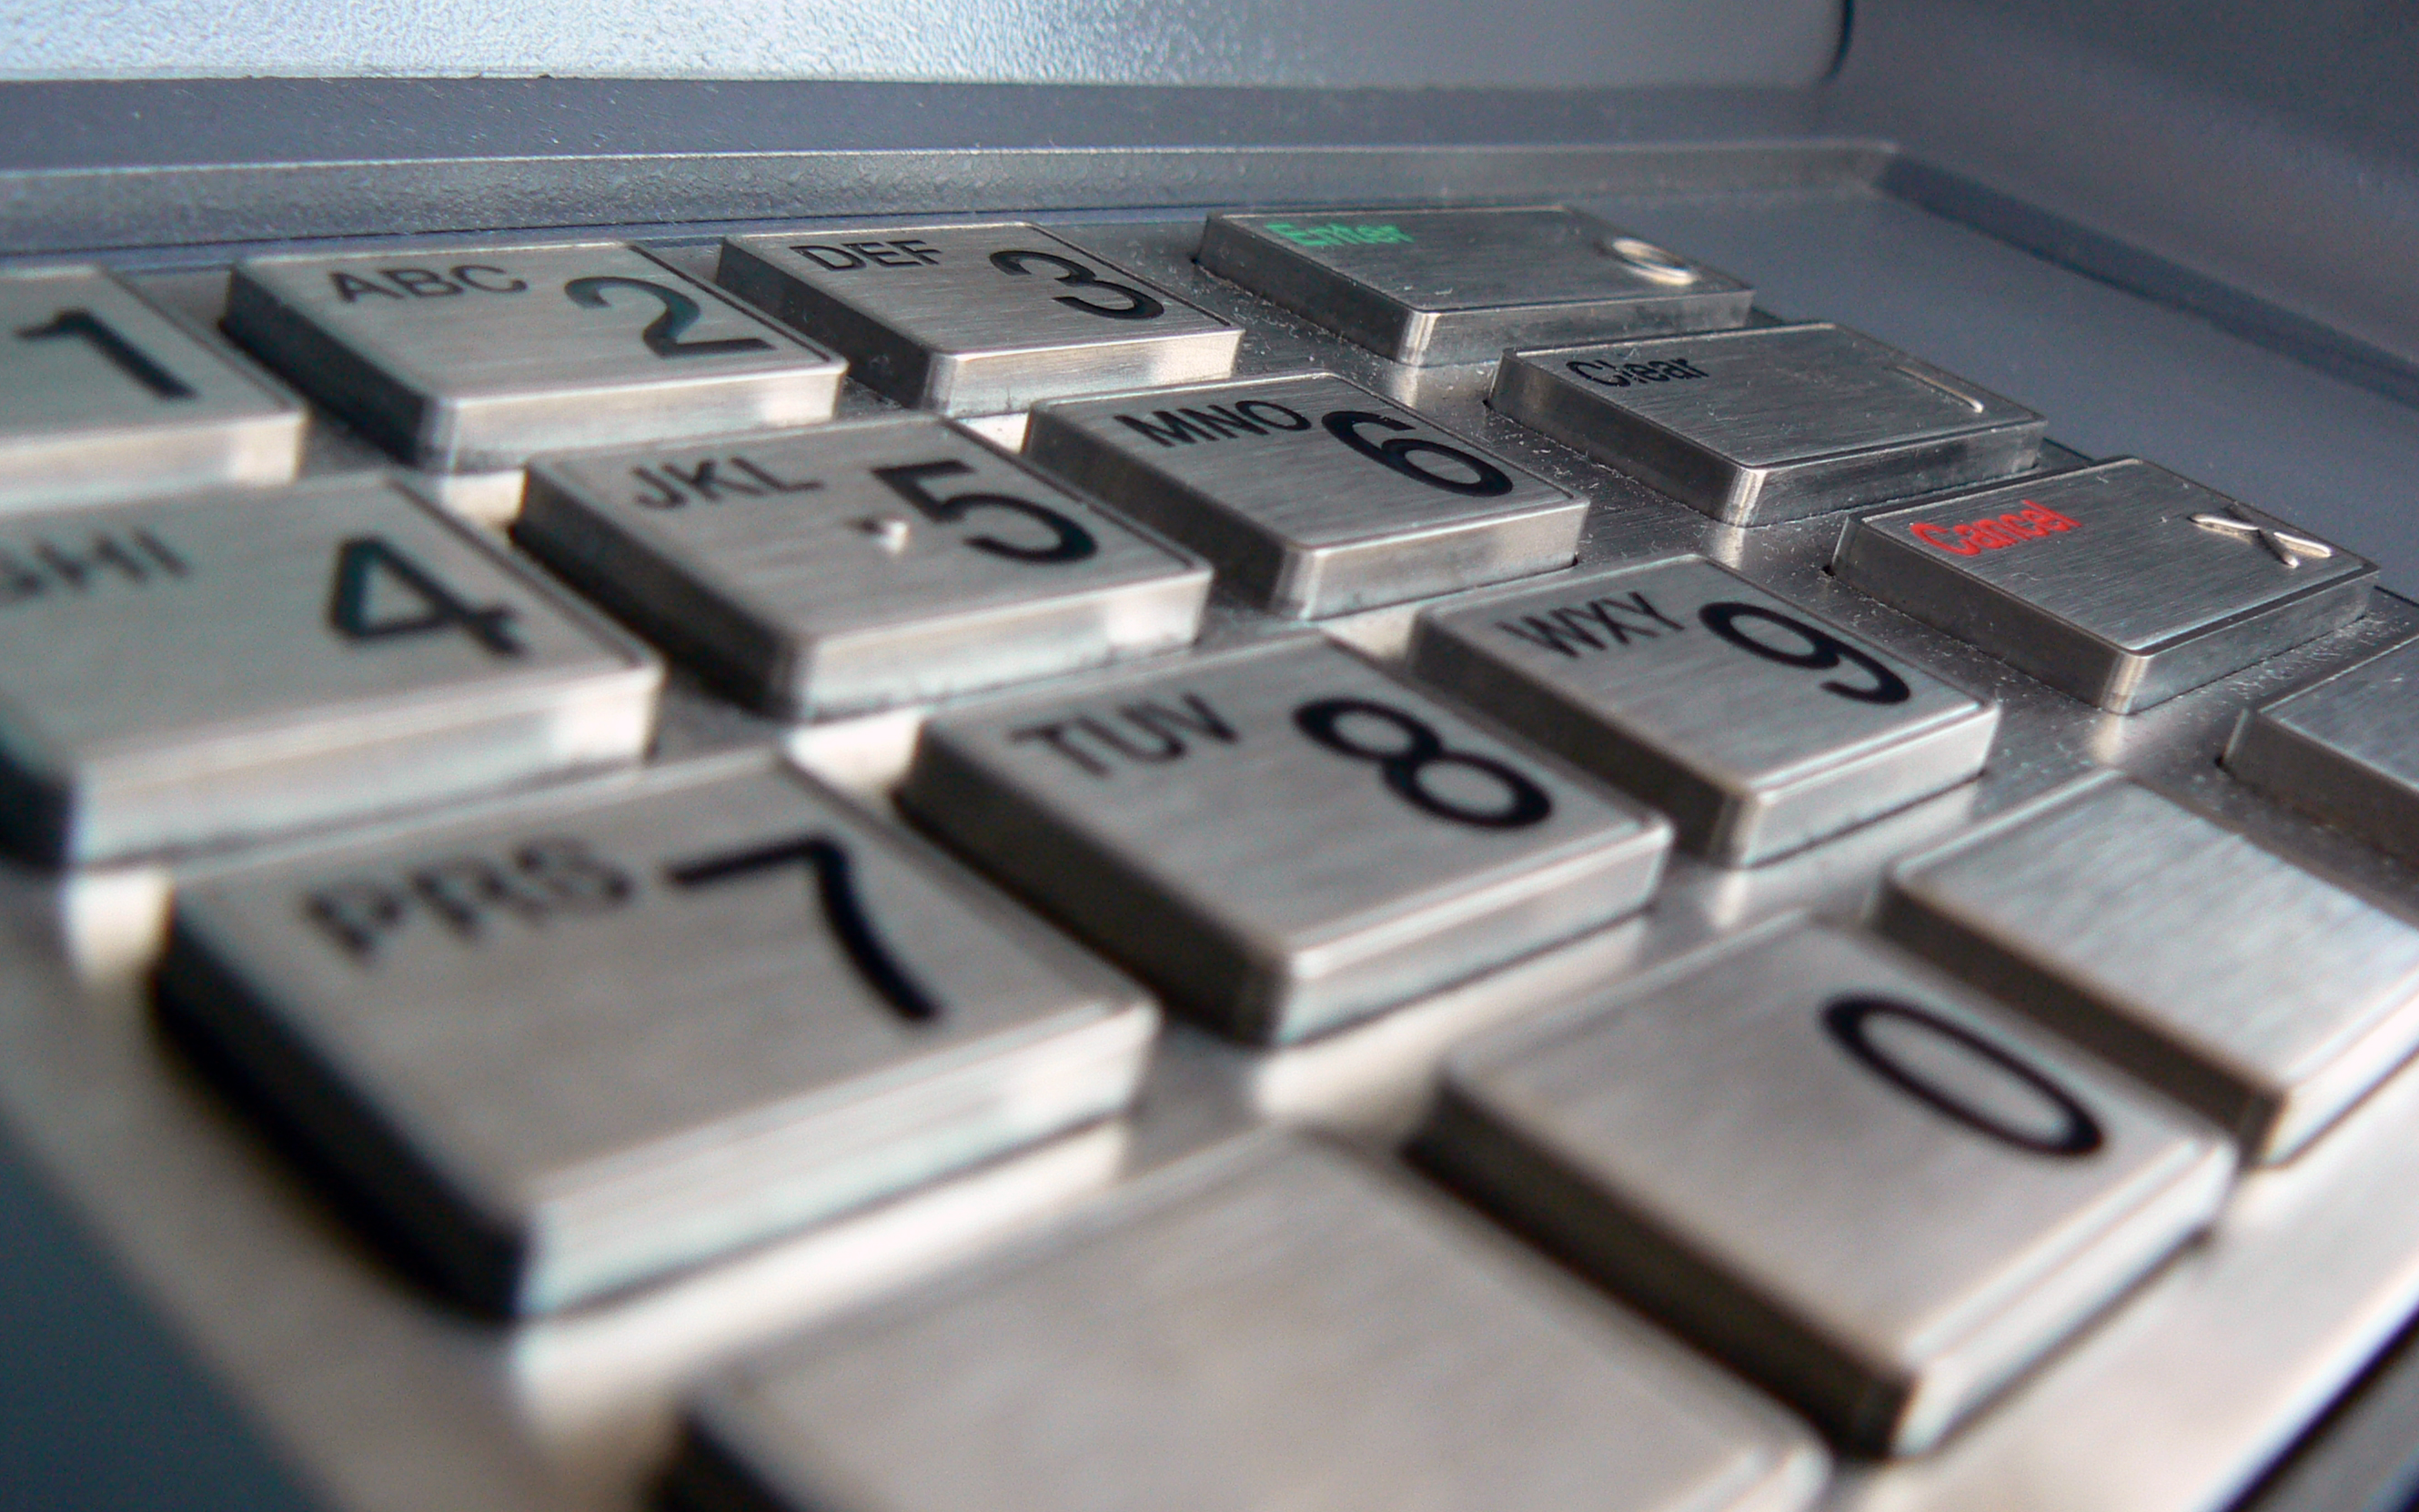 ATM Keypad - PIN invented by James Goodfellow